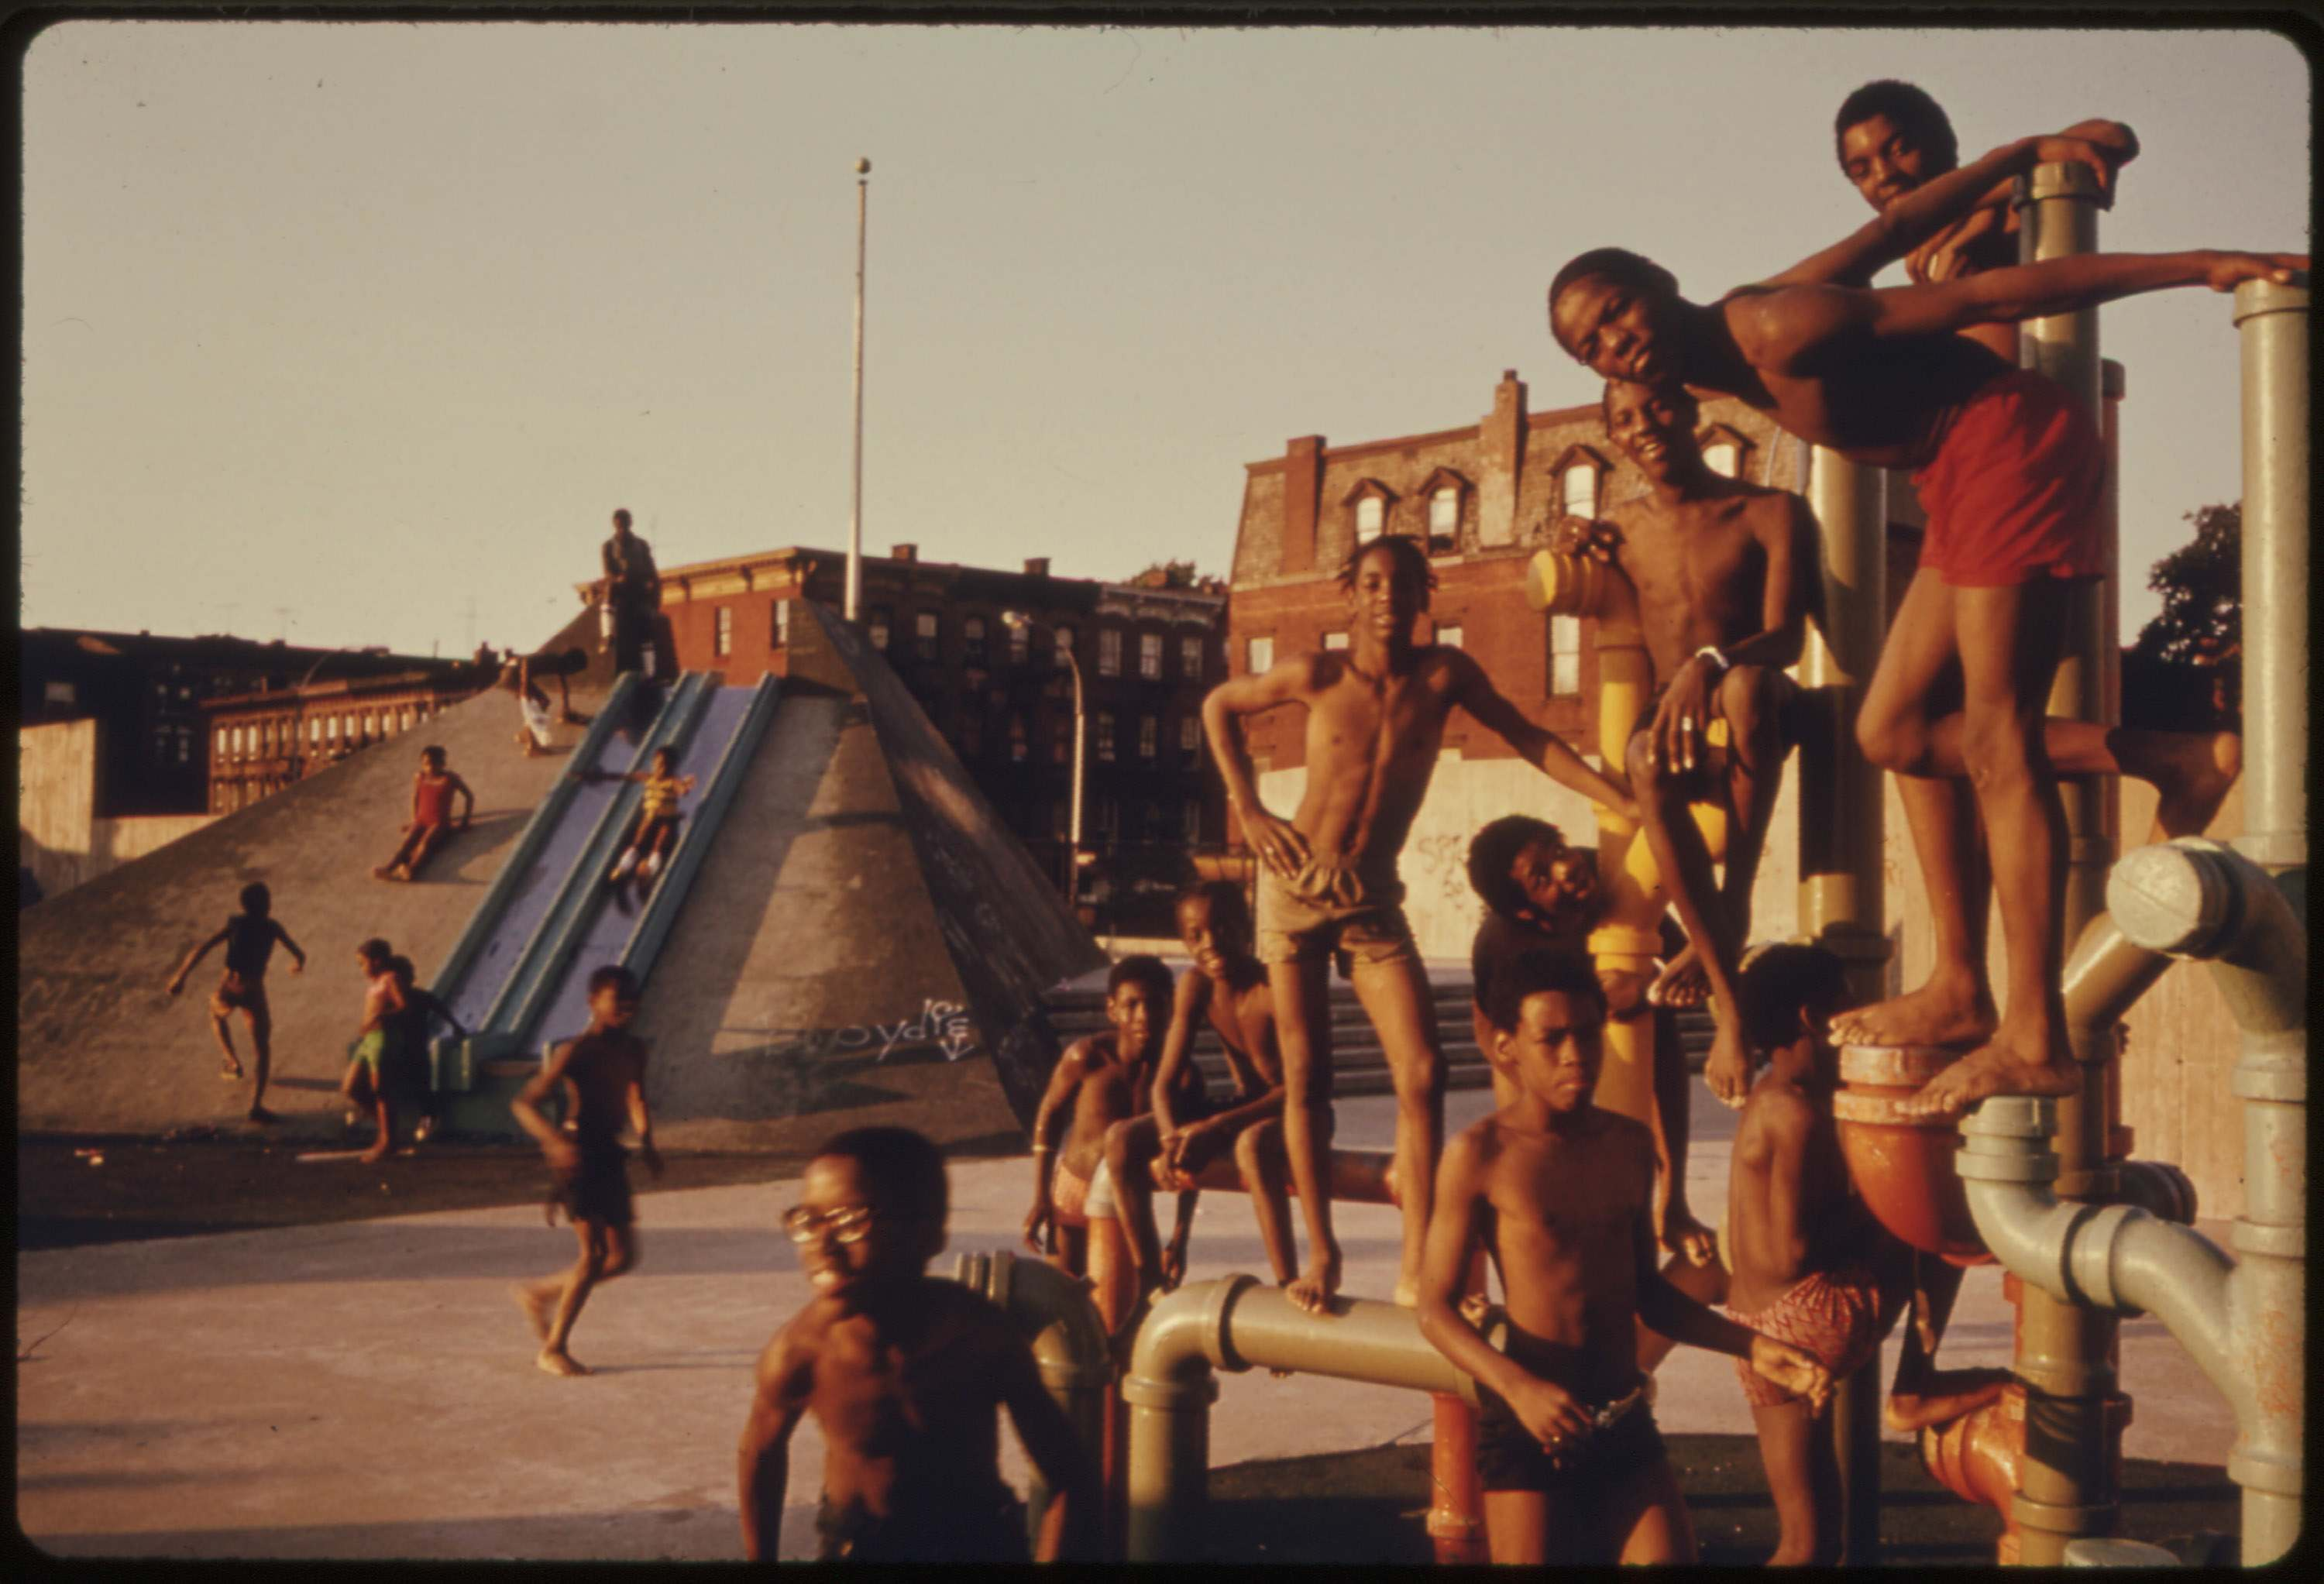 July 4th Holiday at the Kosciusko Swimming Pool in Brooklyn's Bedford-Stuyvesant District, July 1974.